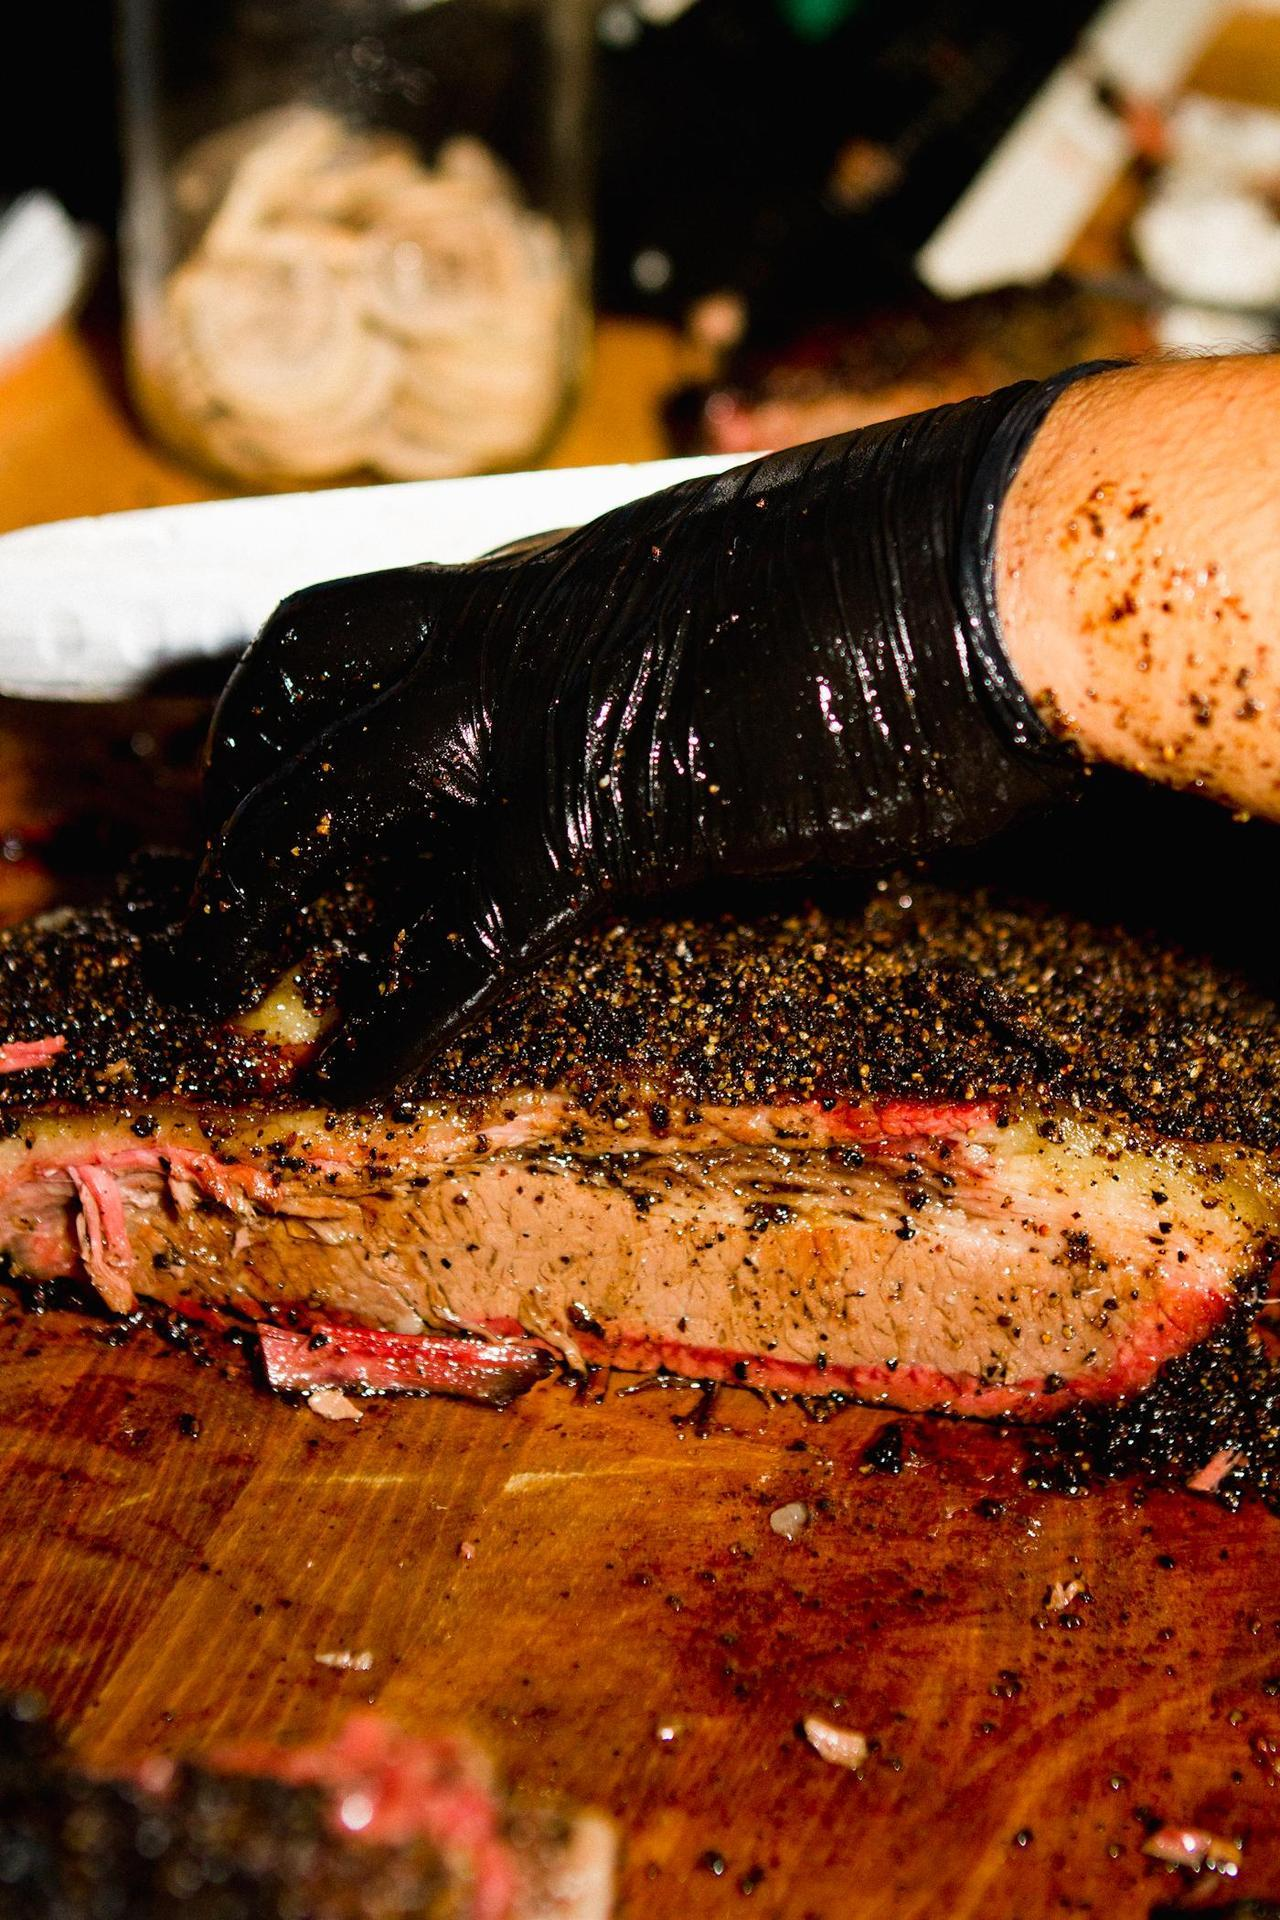 DUDE: FREE. BRISKET. I volunteered at a former BrisketLab and it was amazing. there's a whole string of BrisketLab related events happening, and now the team is launching BrisketTown, so this is your chance to win FREE MEAT. RSVP at: http://comingsoon.briskettown.com tell them I sent ya.